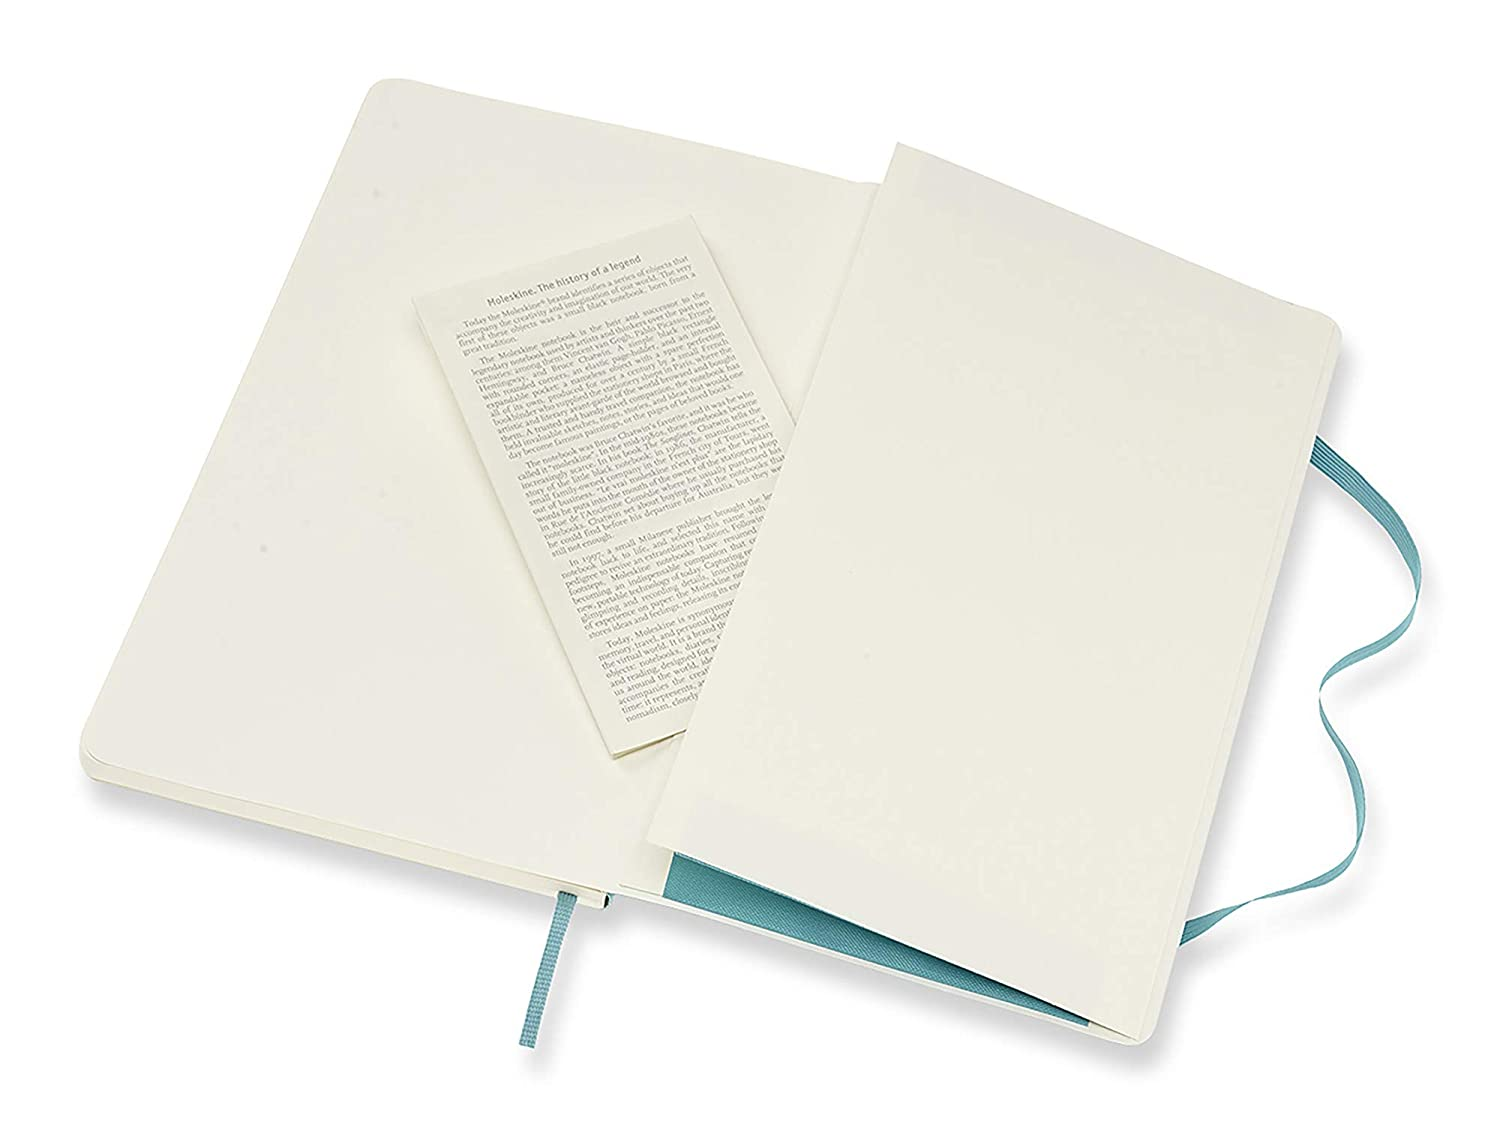 Soft Cover Ruled//Lined Large Moleskine Classic Notebook 5 x 8.25 Sapphire Blue